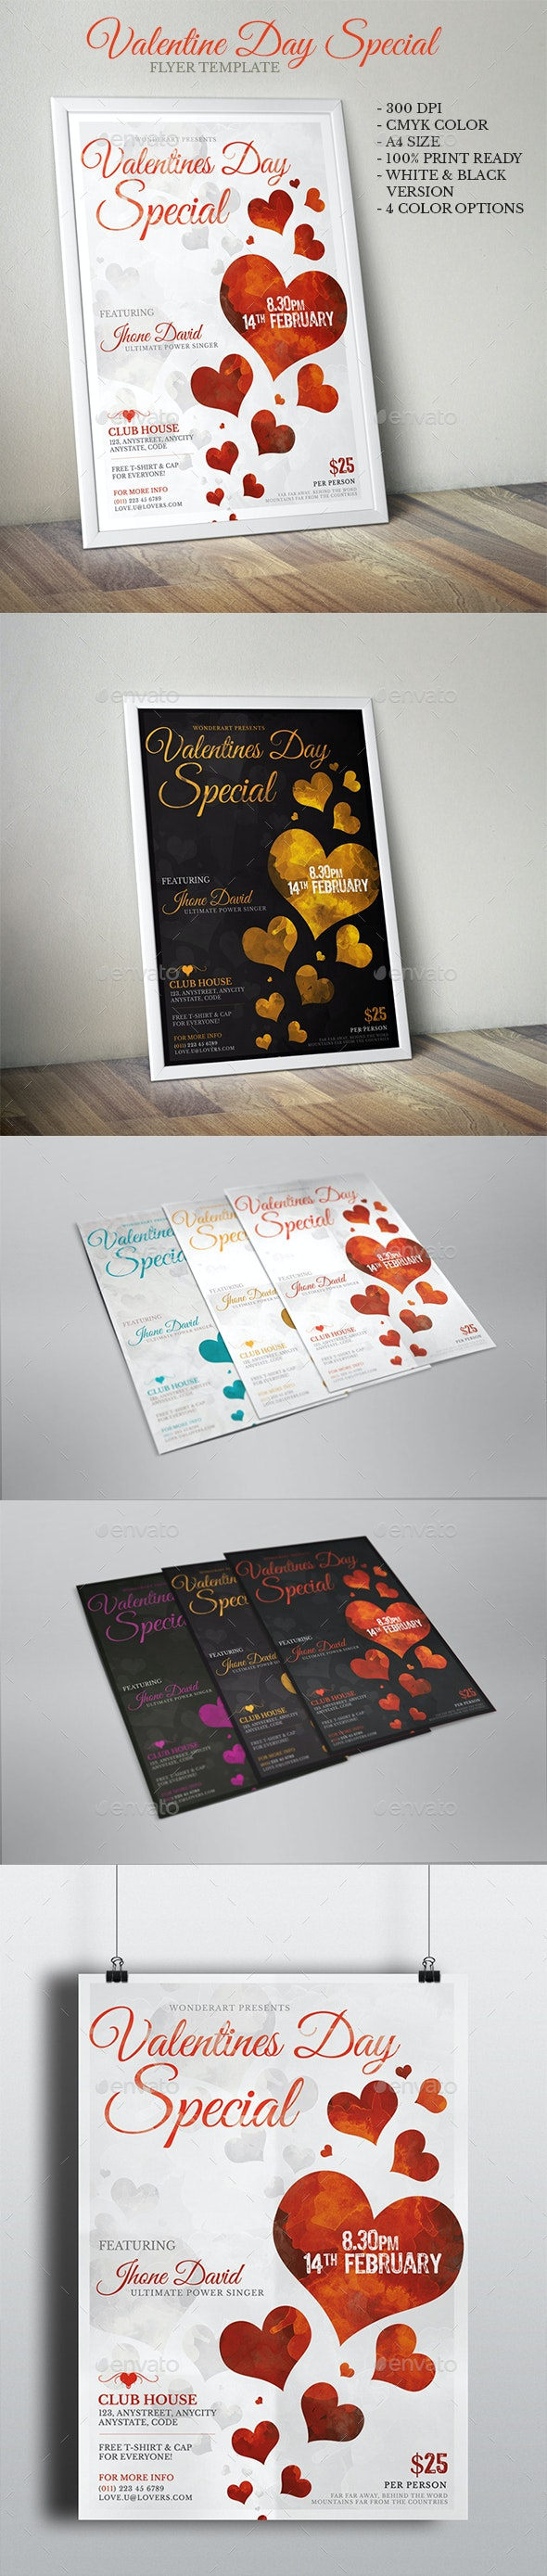 Valentines Day Special Party Inviation Flyer Poster Template - Miscellaneous Events